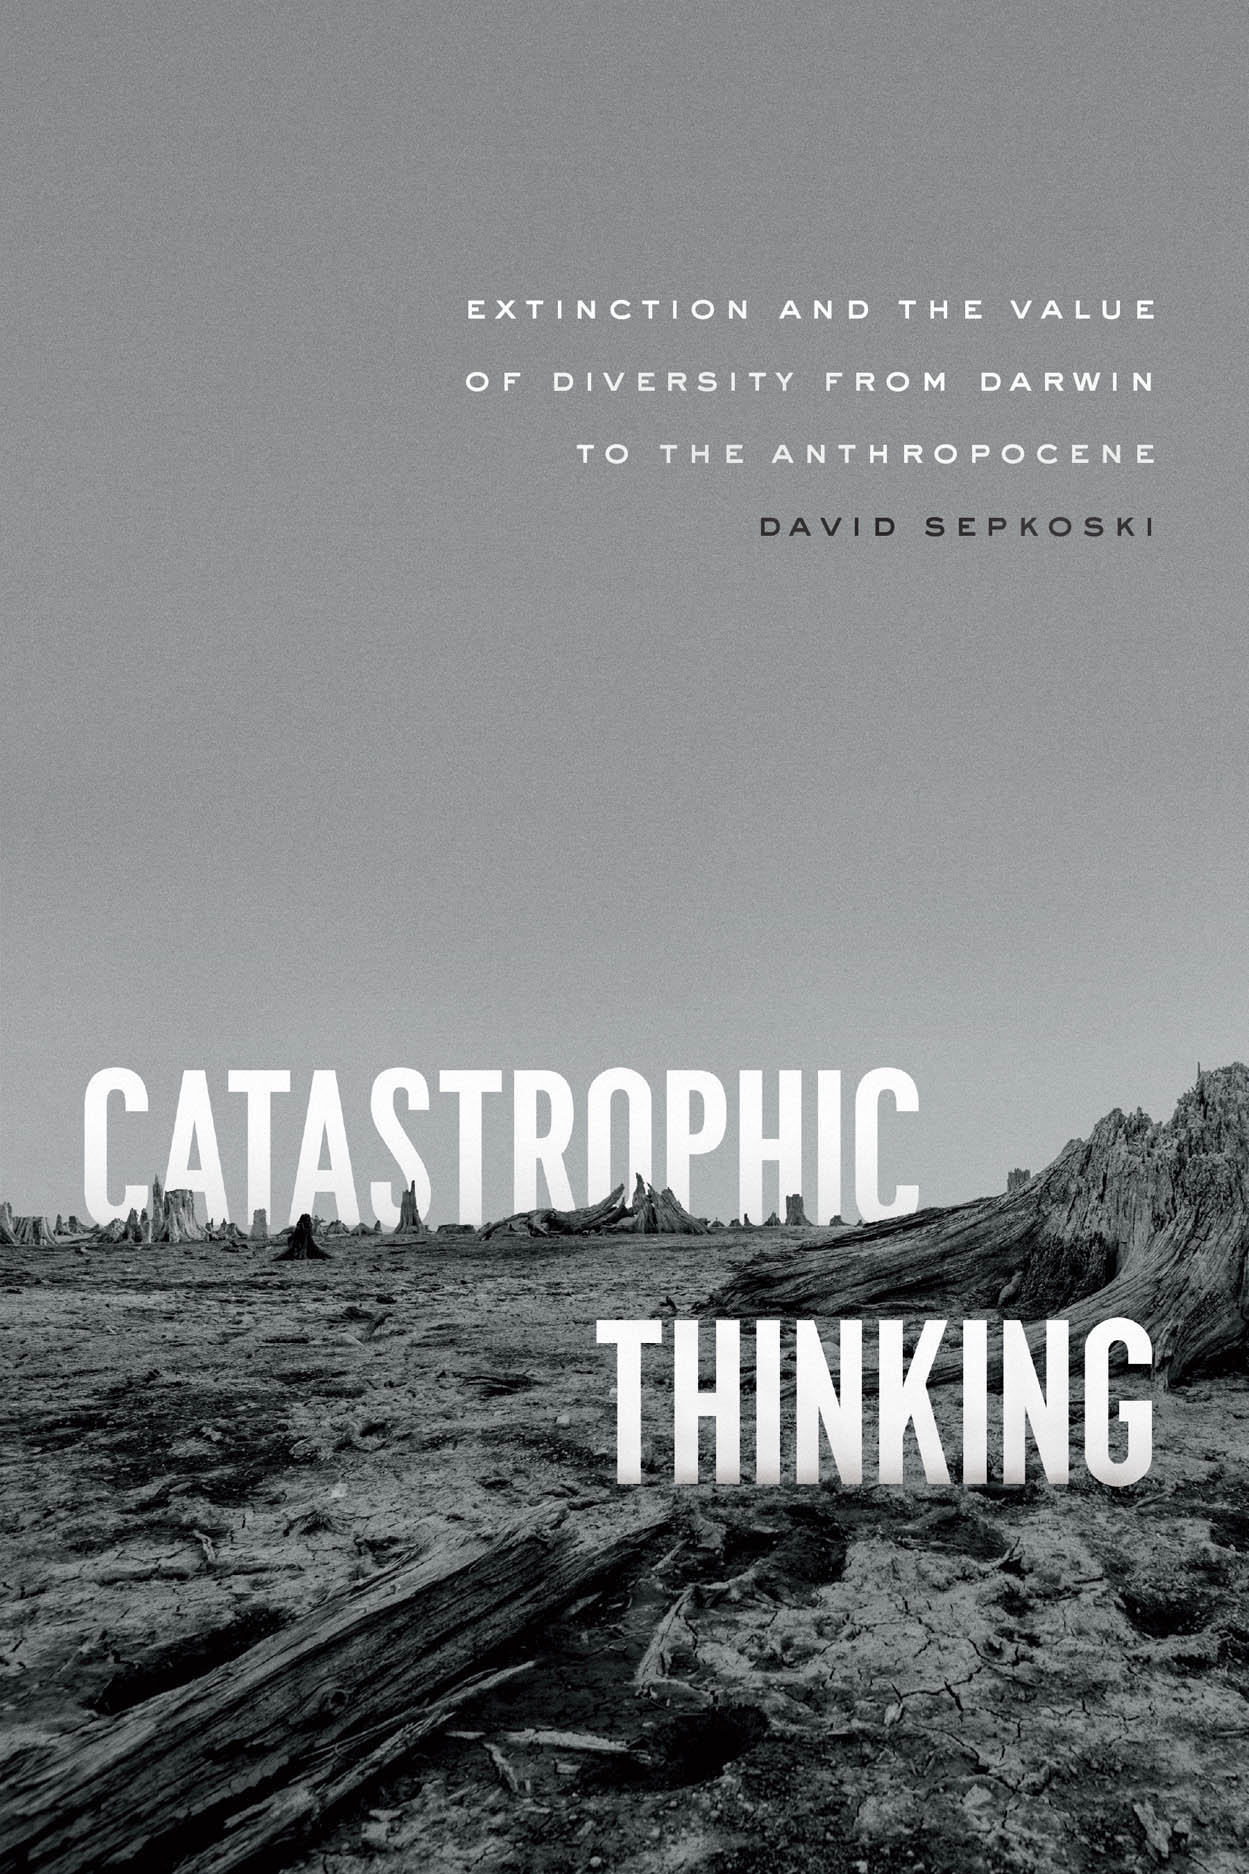 Catastrophic Thinking: Extinction and the Value of Diversity from Darwin to the Anthropocene